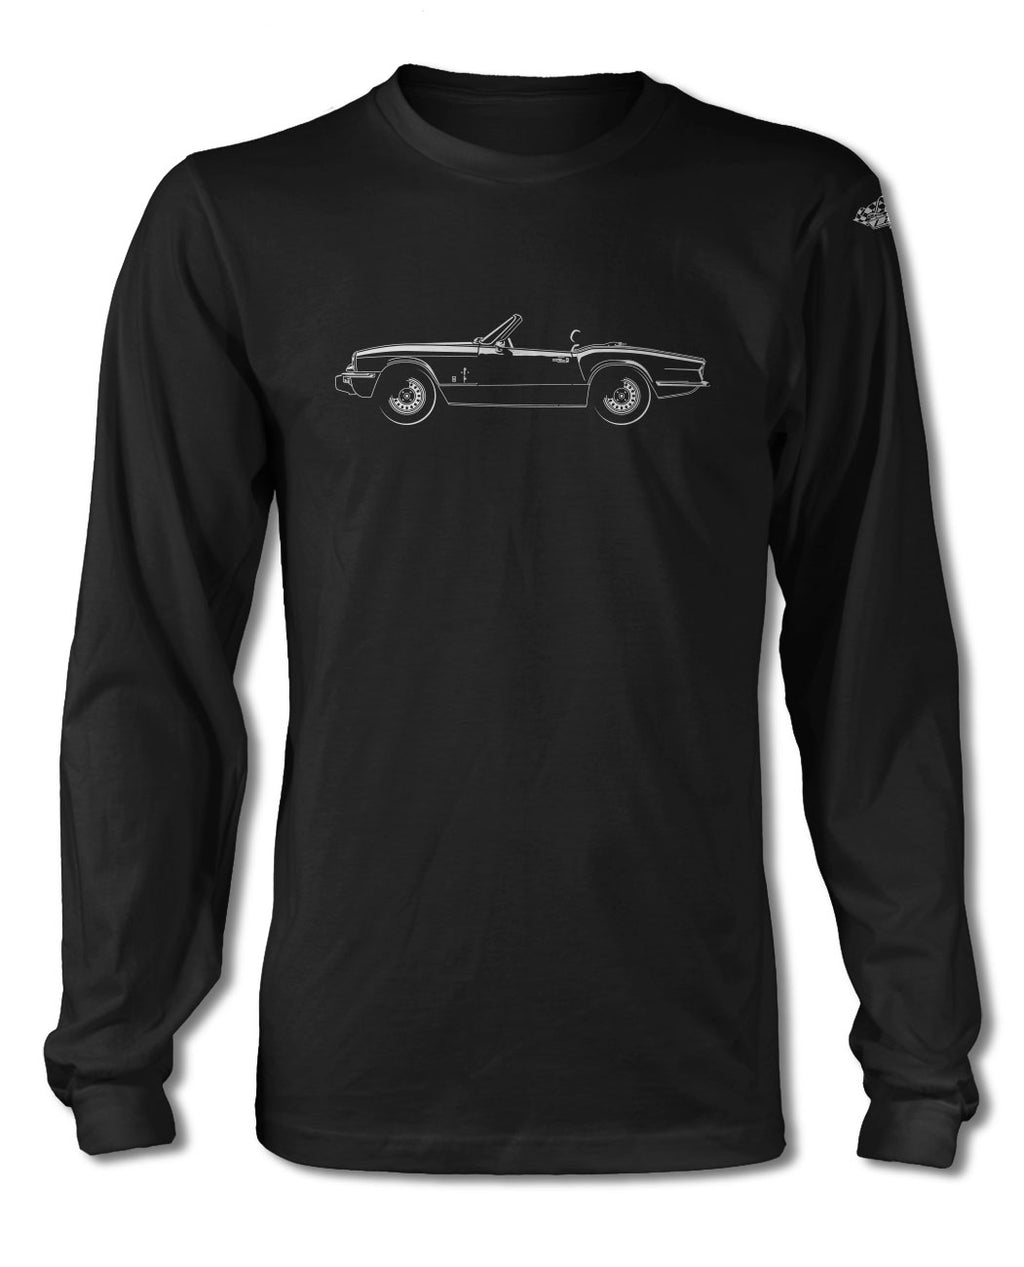 Triumph Spitfire 1500 S1 Convertible T-Shirt - Long Sleeves - Side View